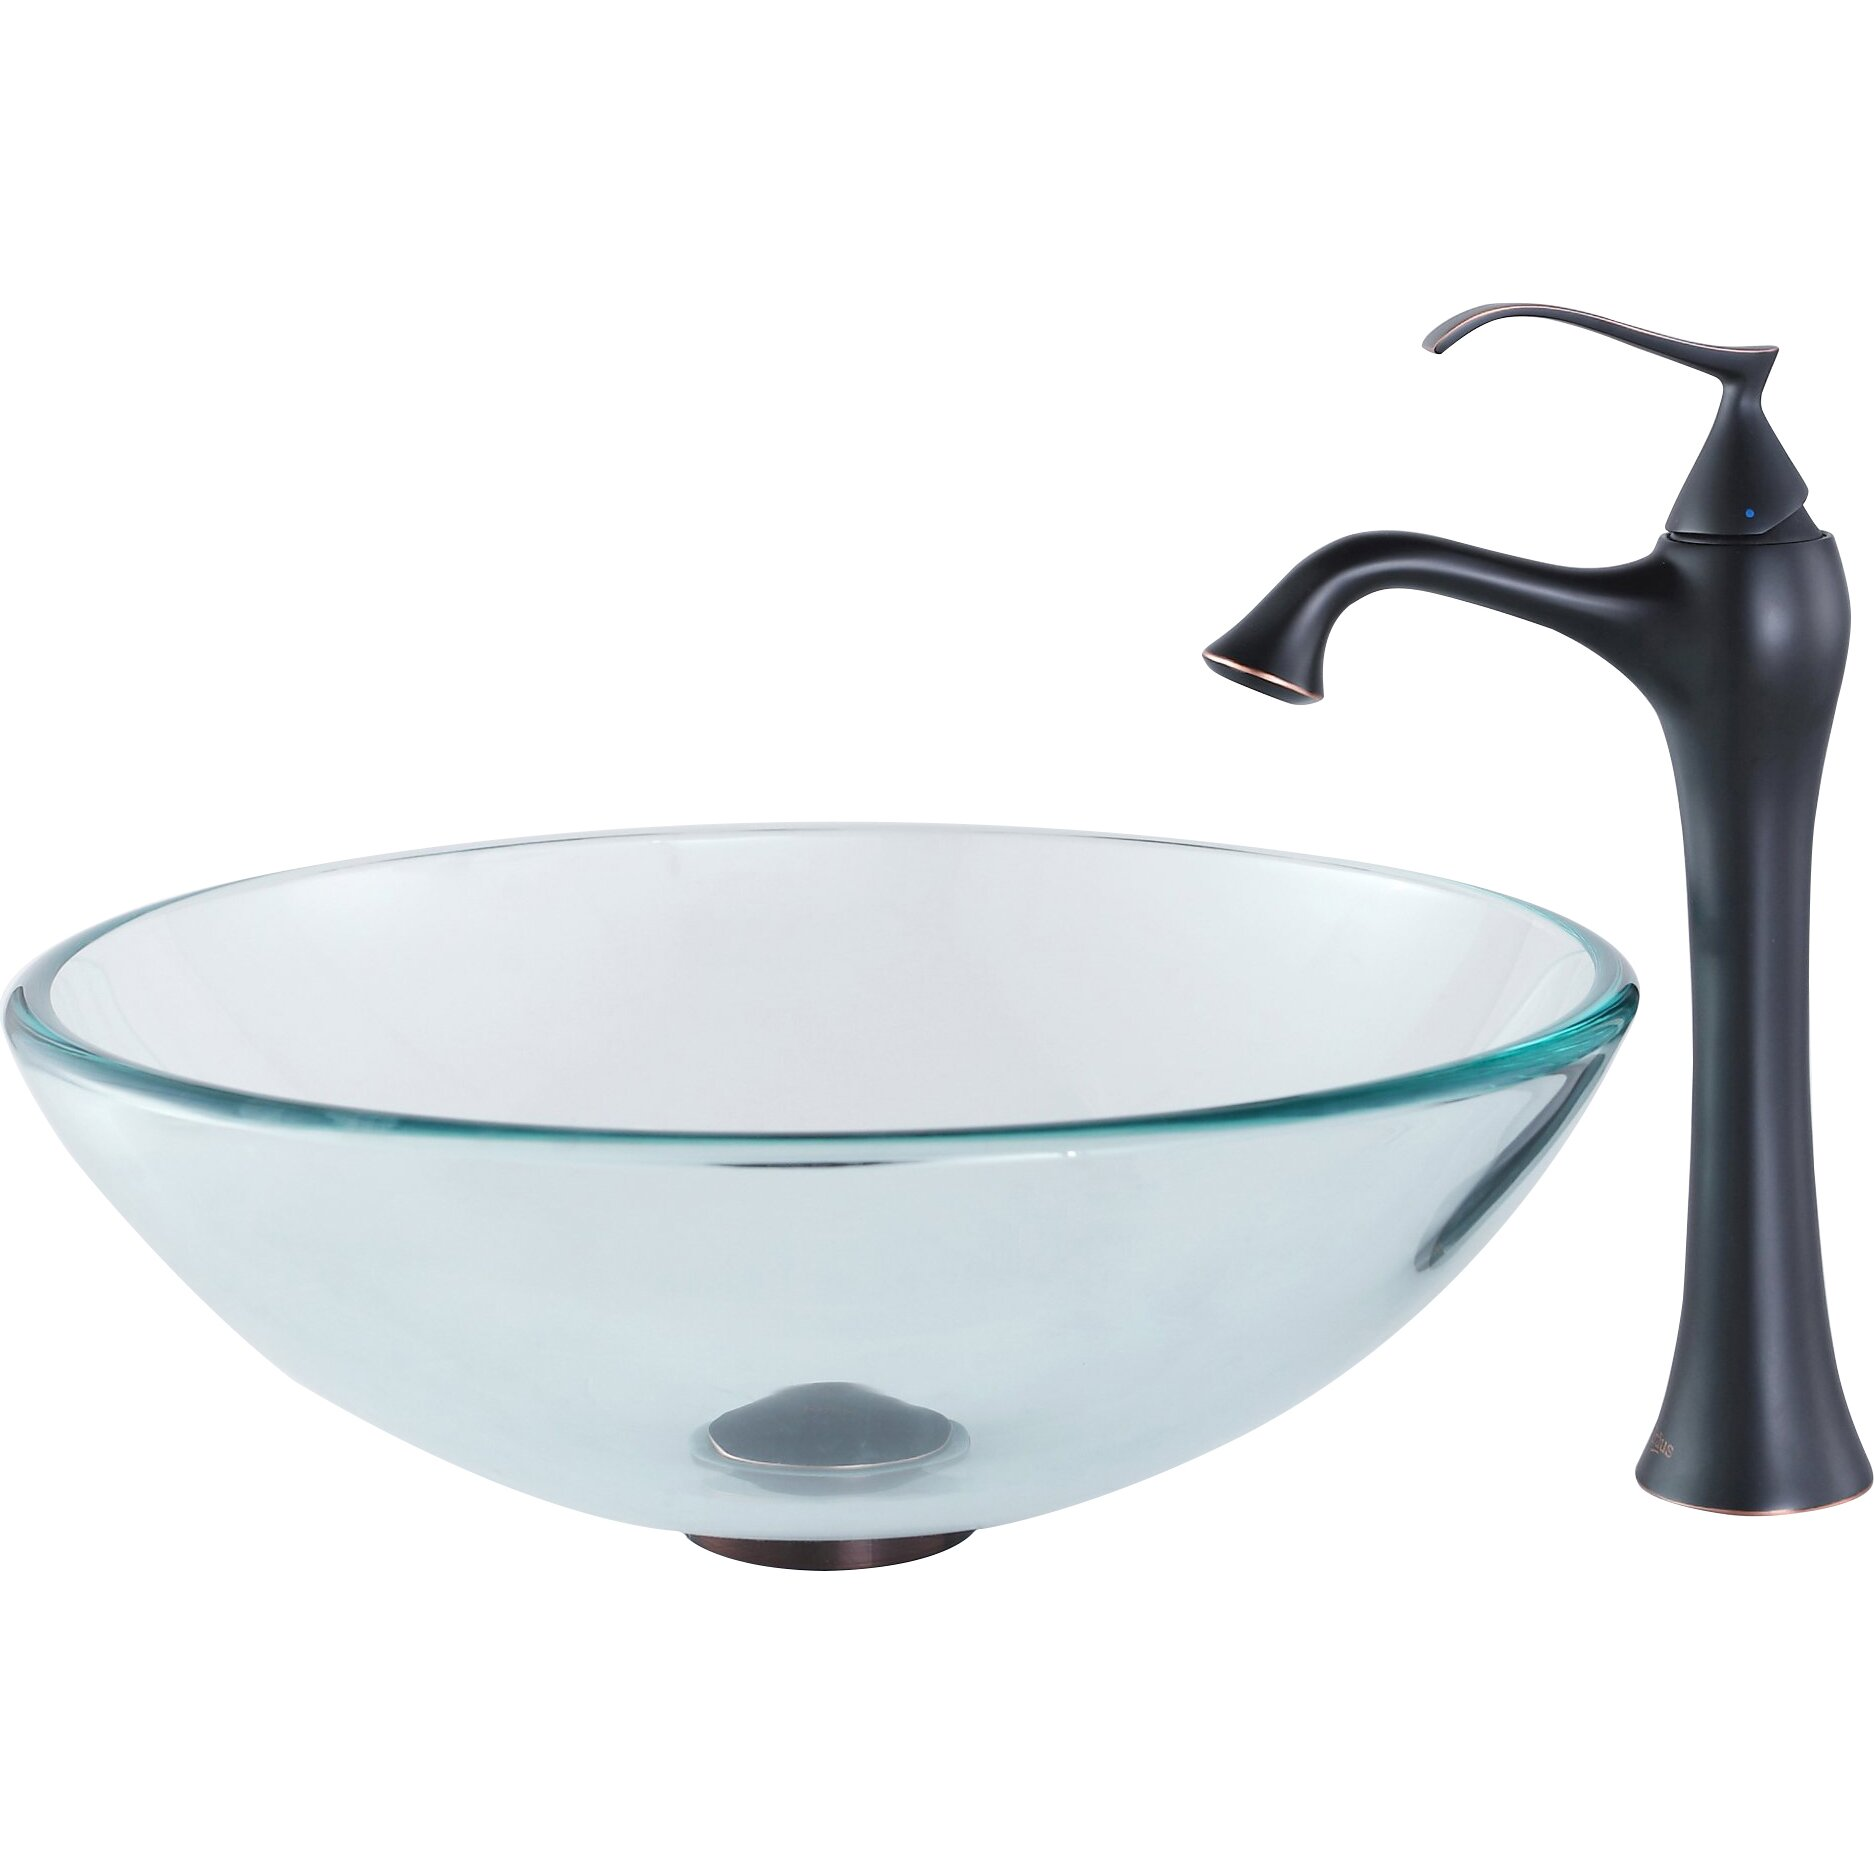 Single Hole Vessel Sink Faucet : Kraus Glass Vessel Bathroom Sink with Single Handle Single Hole Faucet ...